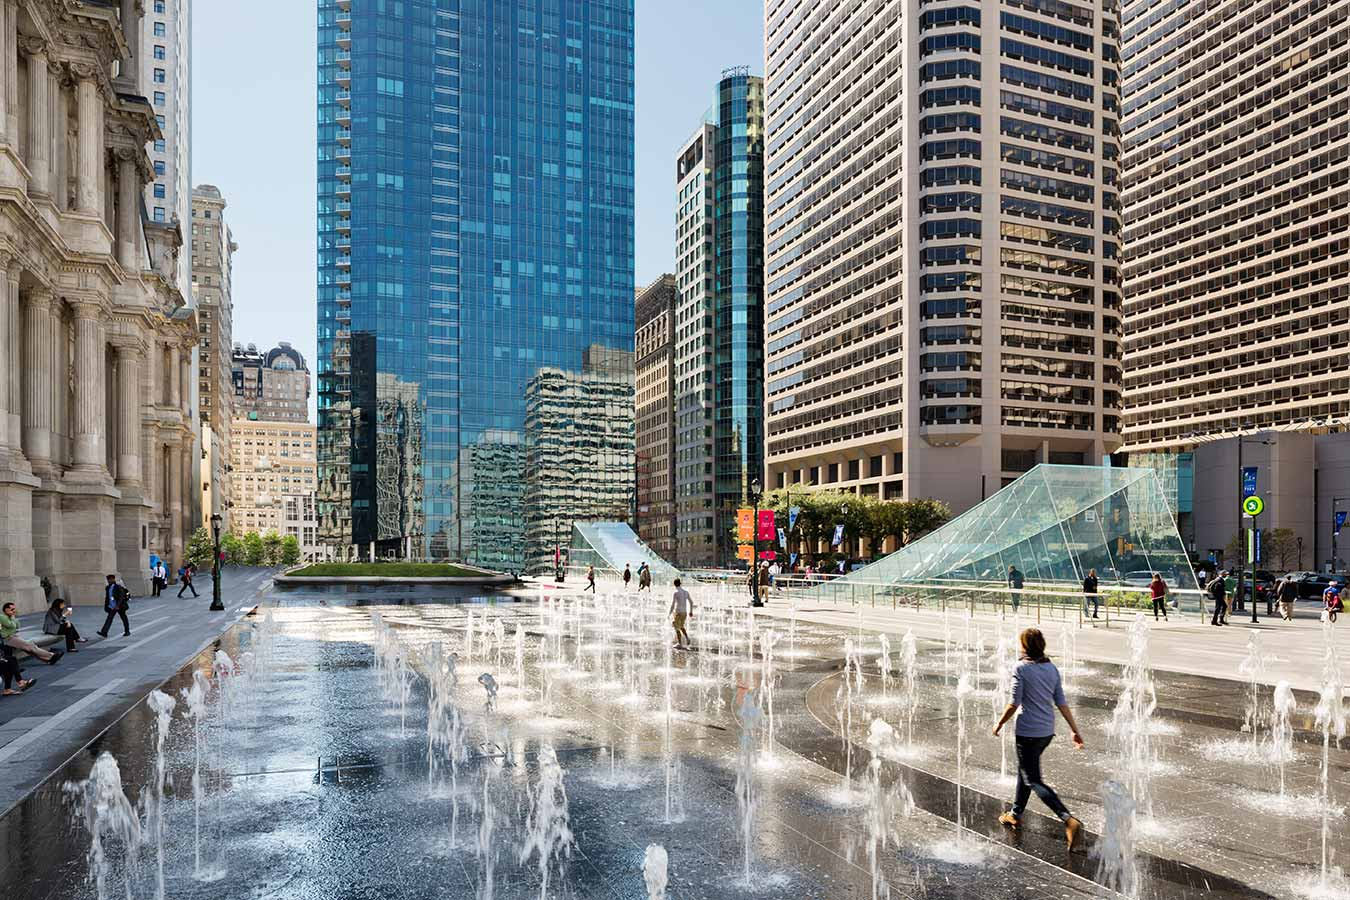 <p>The programmable fountain can be turned partially or completely off, allowing for a broad range of civic and cultural activity, including green markets, concerts, and ice skating in winter. <br><small>&copy; James Ewing Photography</small></p>